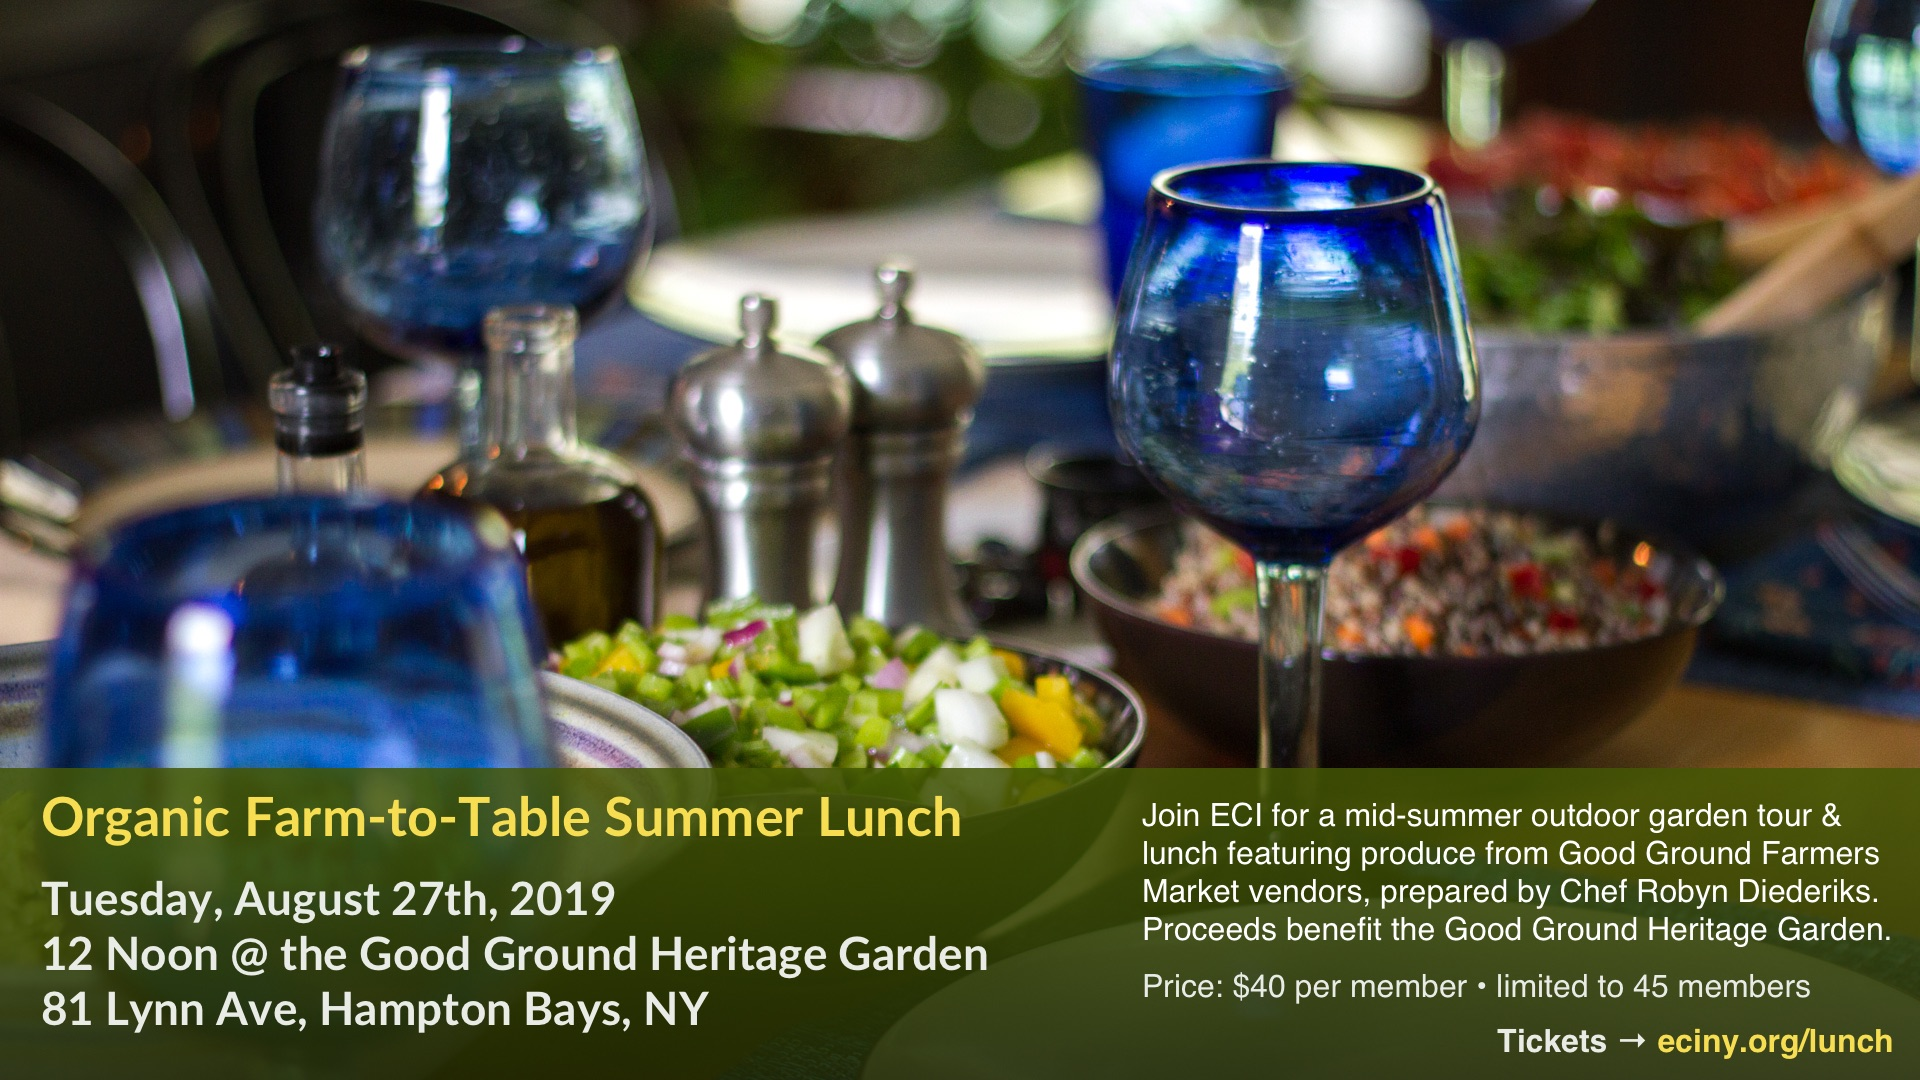 Organic Farm-to-Table Summer Lunch - Aug 27, 2019 - FB cover 1920x1080.jpg